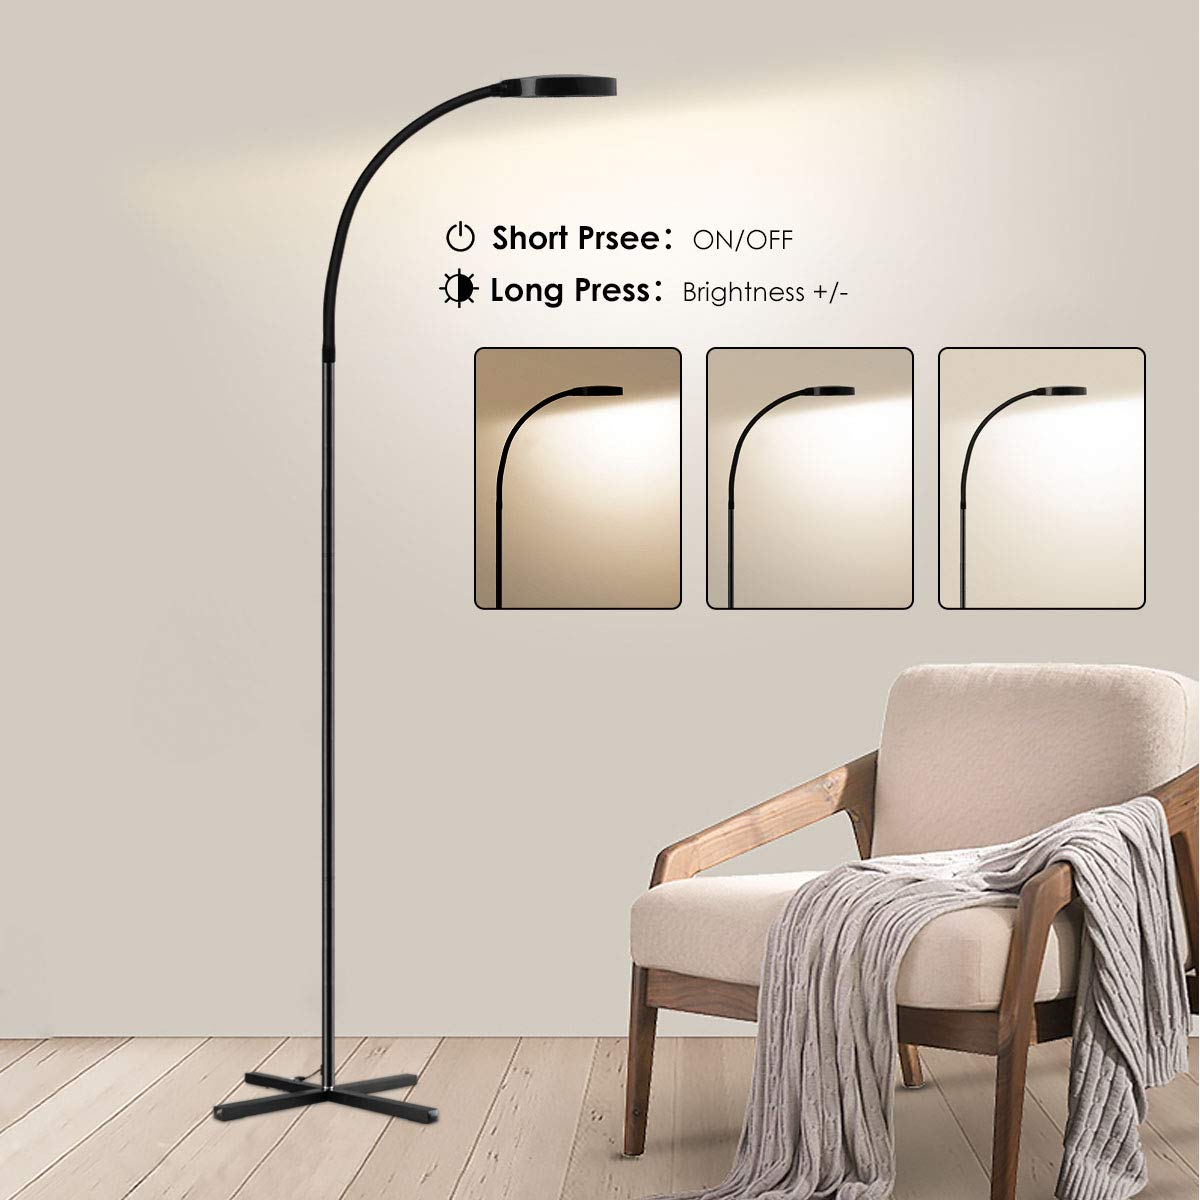 Joly Joy Reading Floor Lamp, Dimmable Flexible Gooseneck LED Floor Lamps for Living Room, Touch Control Standing Lamps for Room, Bedroom, Office, Task (4000K)